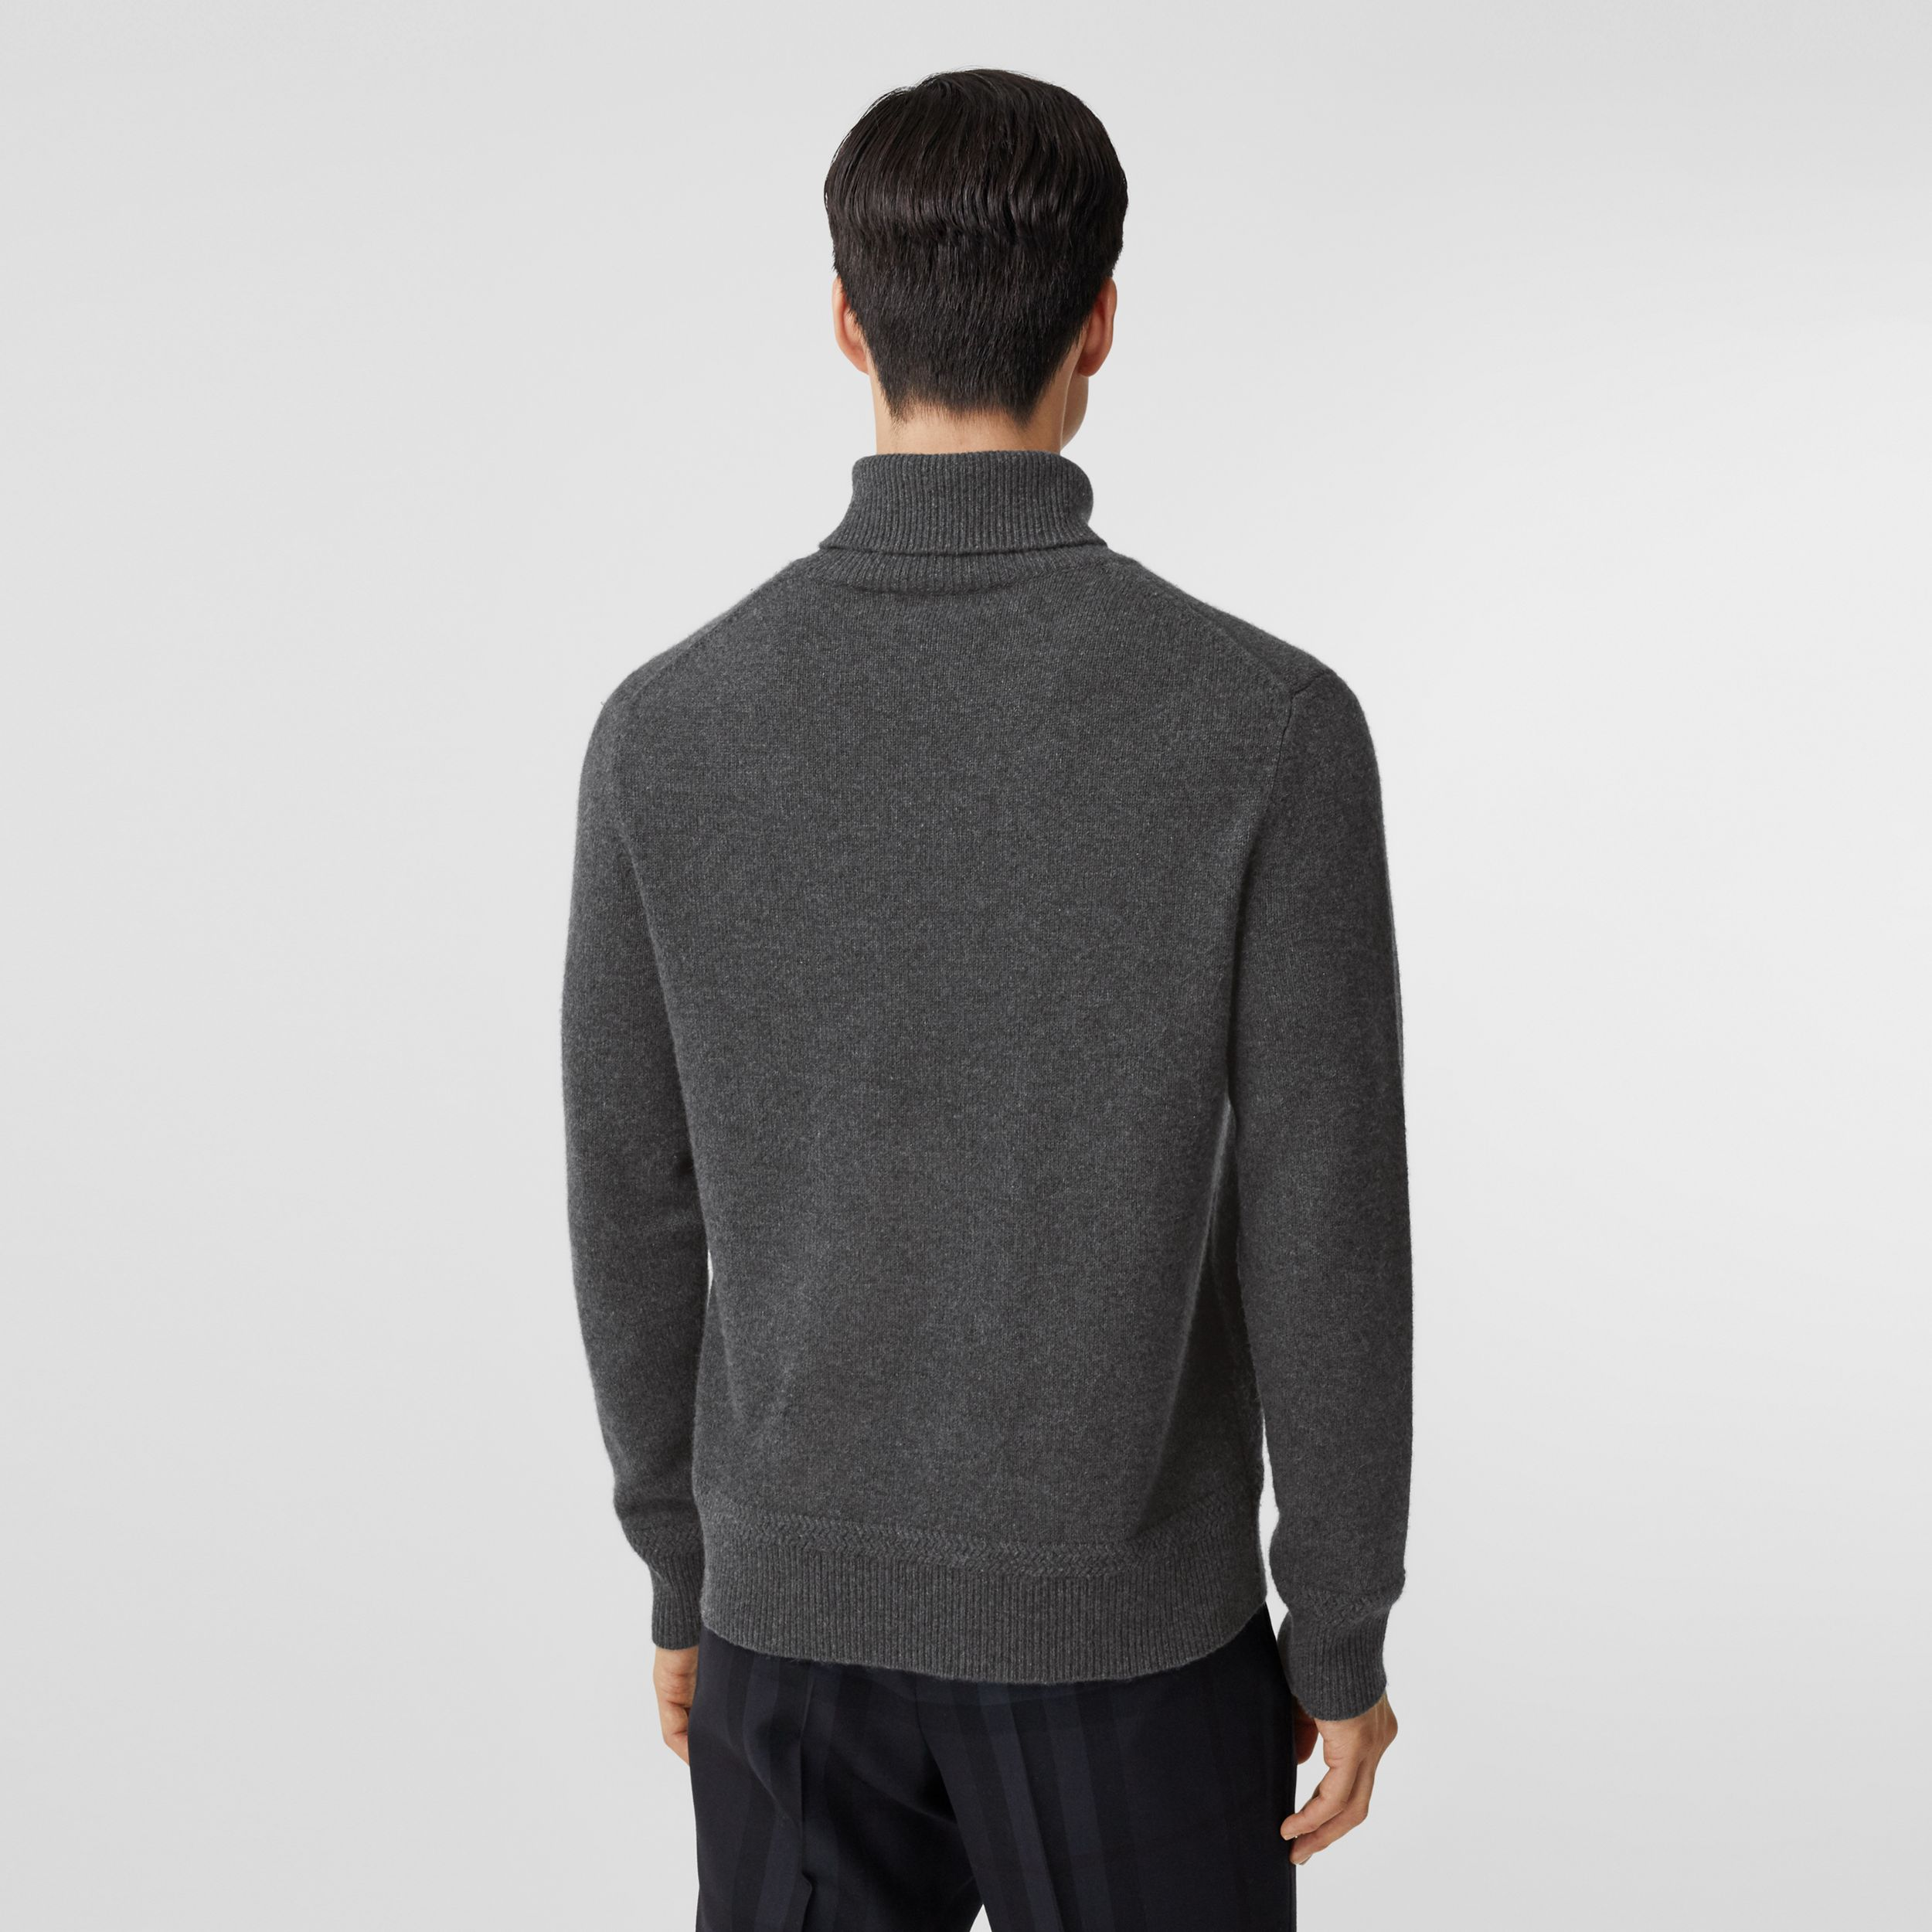 Monogram Motif Cashmere Roll-neck Sweater in Charcoal - Men | Burberry - 3